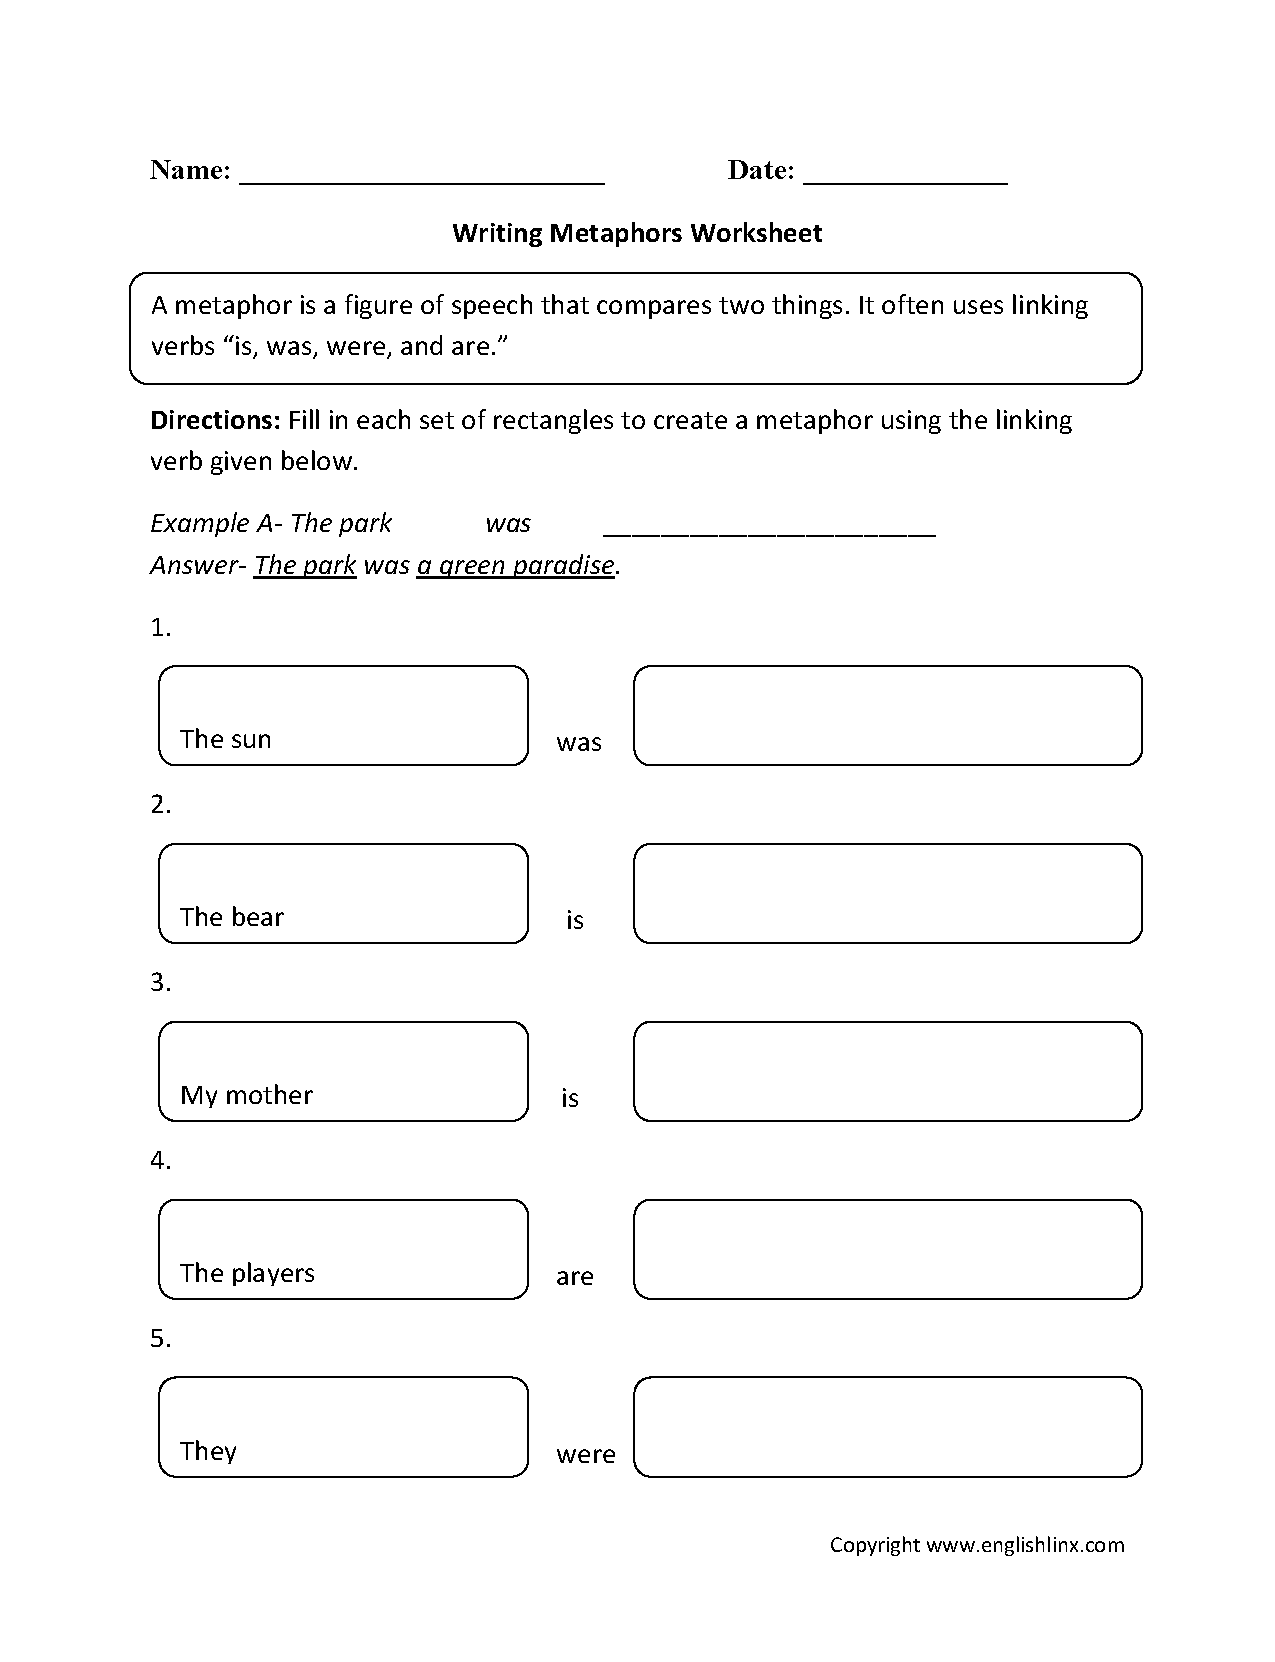 Aldiablosus  Scenic Englishlinxcom  Metaphors Worksheets With Great Worksheet With Beauteous Qualified Dividends And Capital Gain Tax Worksheet Also Self Esteem Worksheets In Addition Types Of Reactions Worksheet And Parts Of Speech Worksheets As Well As Electron Configuration Practice Worksheet Additionally Cell Membrane Coloring Worksheet From Englishlinxcom With Aldiablosus  Great Englishlinxcom  Metaphors Worksheets With Beauteous Worksheet And Scenic Qualified Dividends And Capital Gain Tax Worksheet Also Self Esteem Worksheets In Addition Types Of Reactions Worksheet From Englishlinxcom